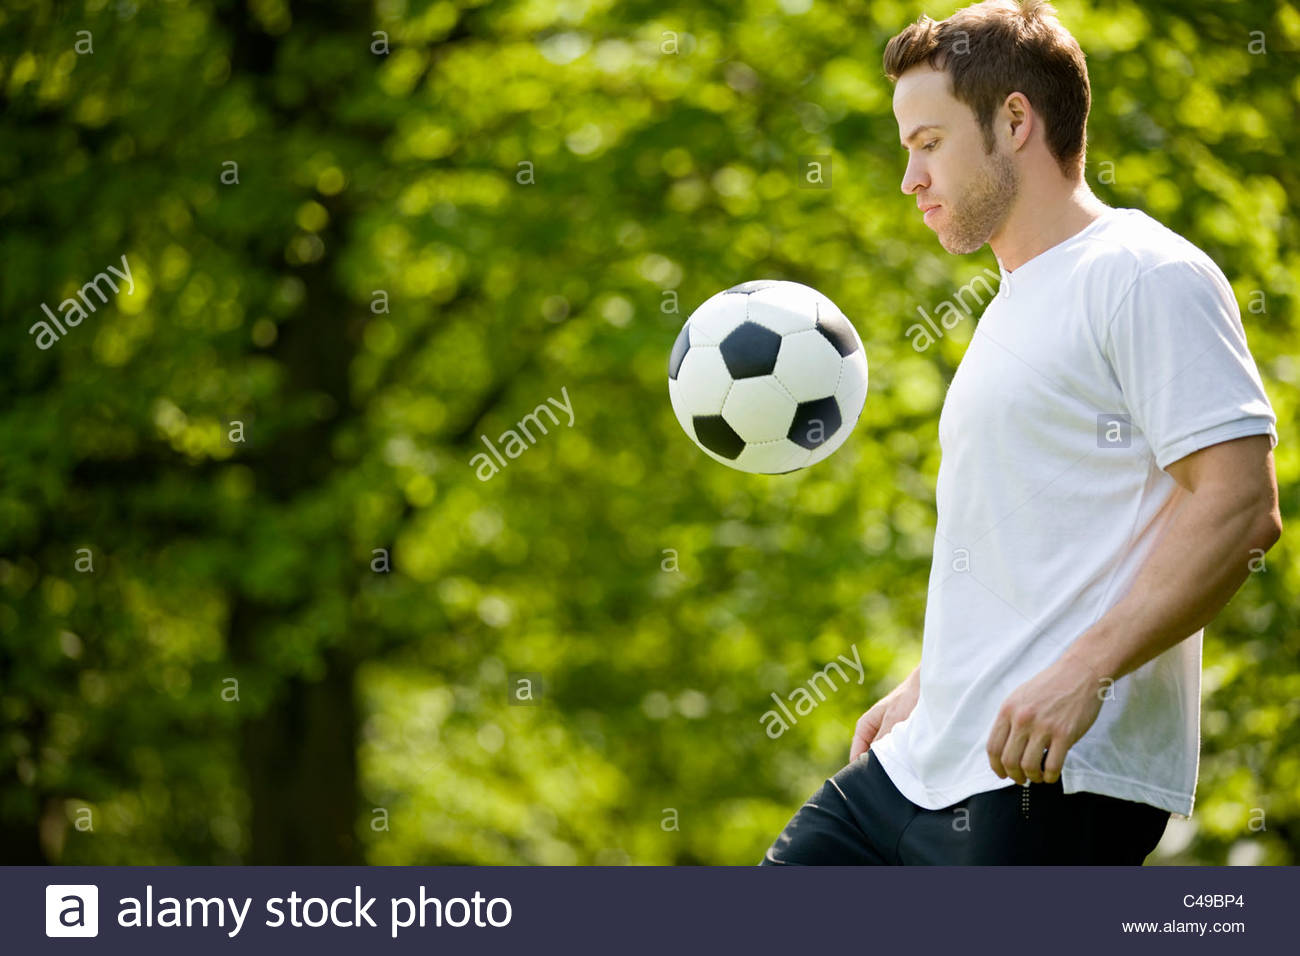 A young man playing with a football - Stock Image